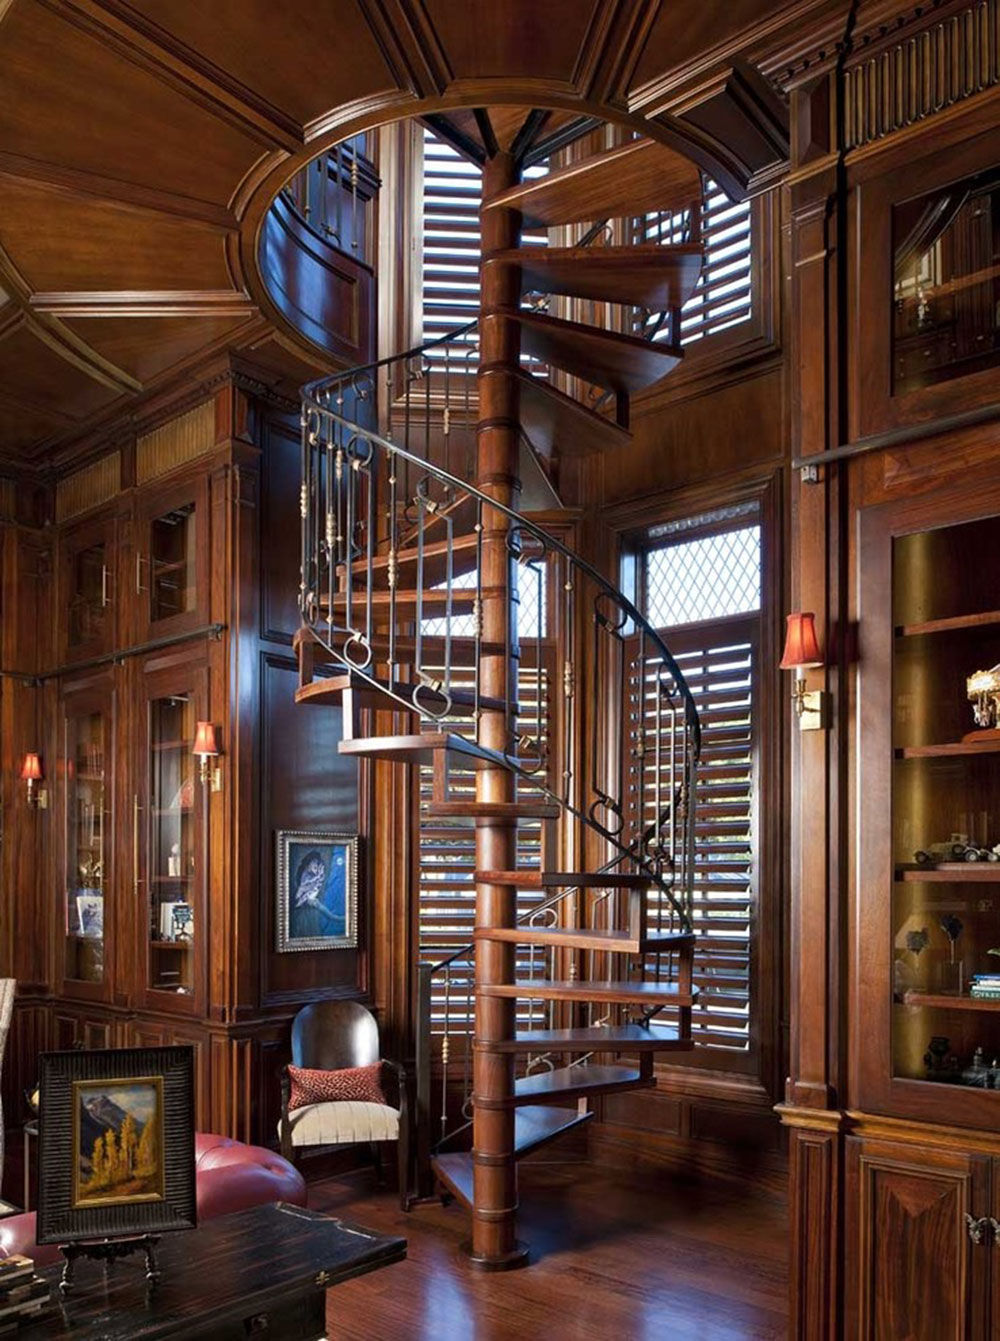 North-Dallas-Residence-by-Dallas-Design-Group-Interiors Spiral Staircase Pictures and Things You Should Know About Them